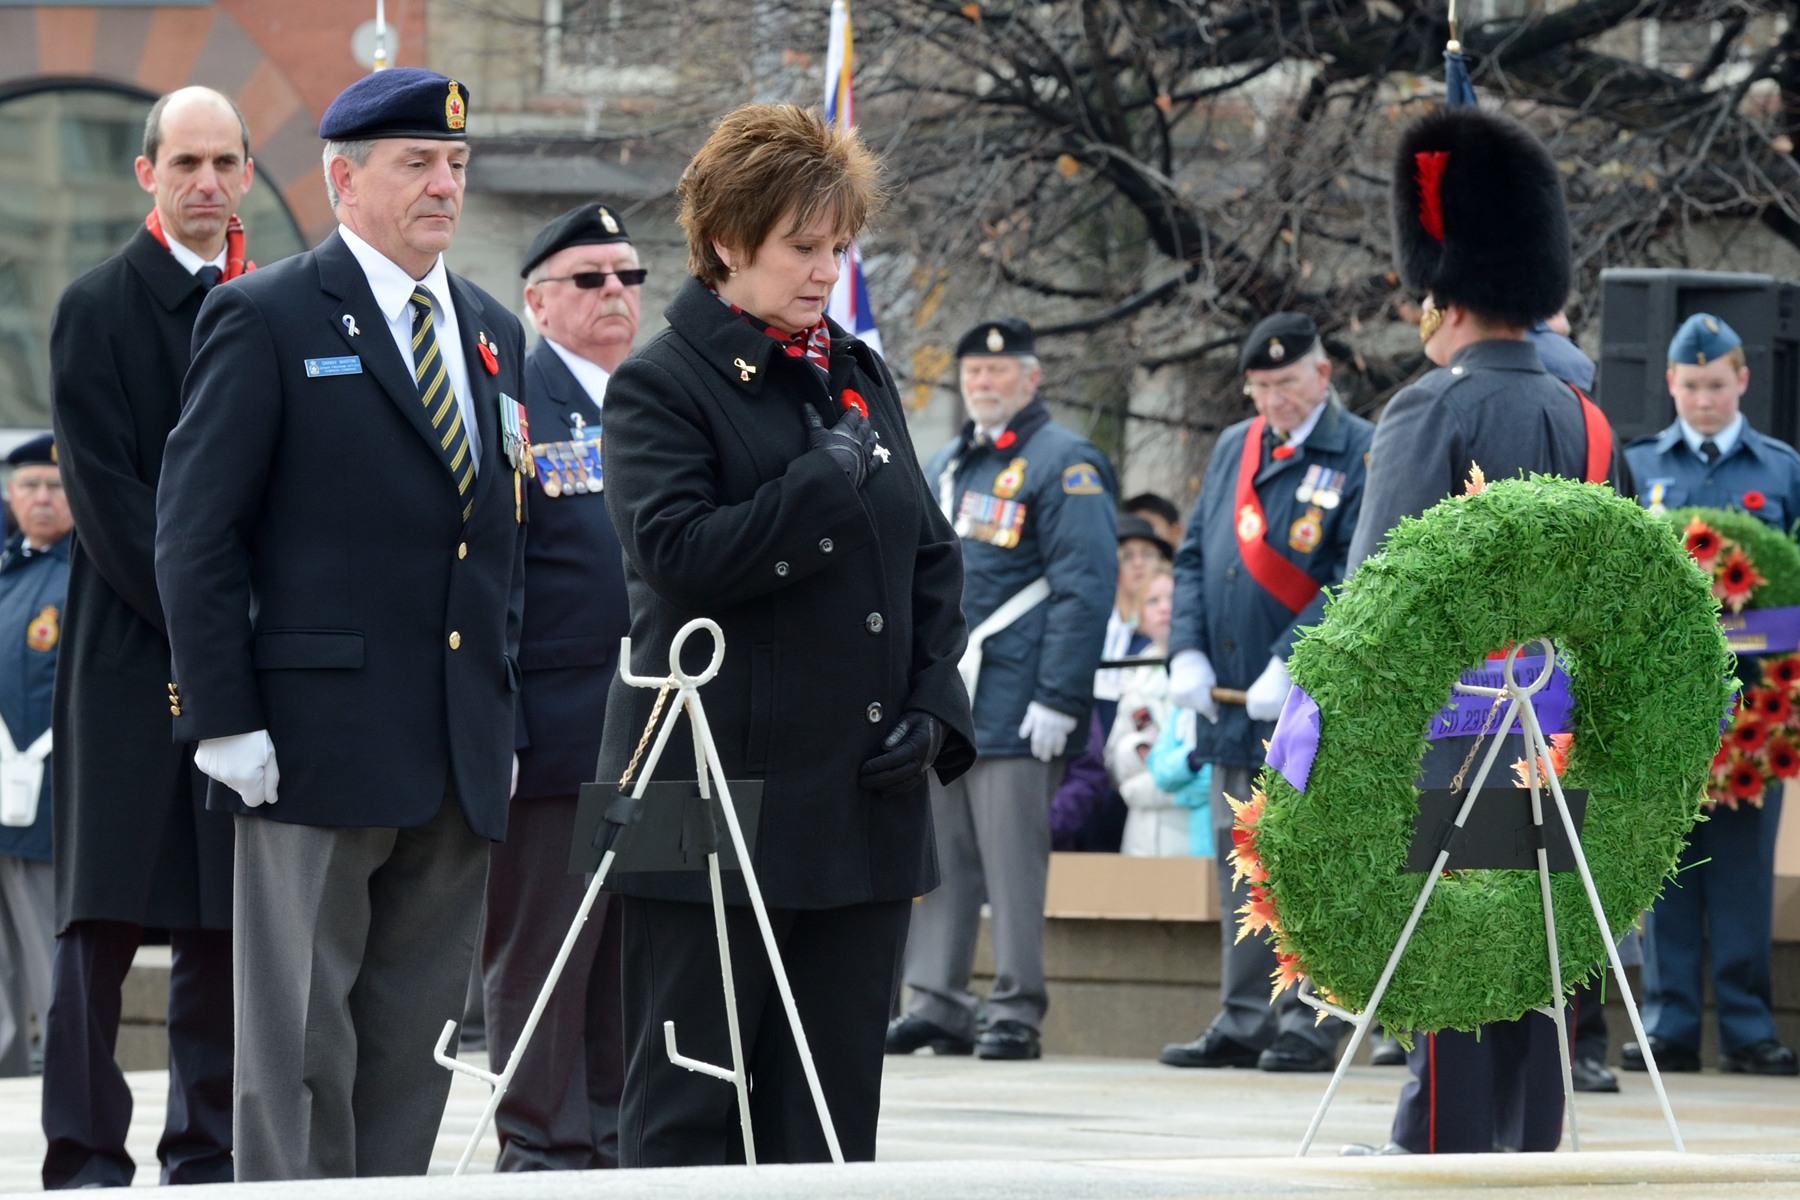 Their Excellencies were followed by the 2012 National Silver Cross Mother, Mrs. Roxanne Priede, whose son, Master Corporal Darrell Jason Priede, died in a Chinook helicopter crash on May 30, 2007, in Afghanistan.